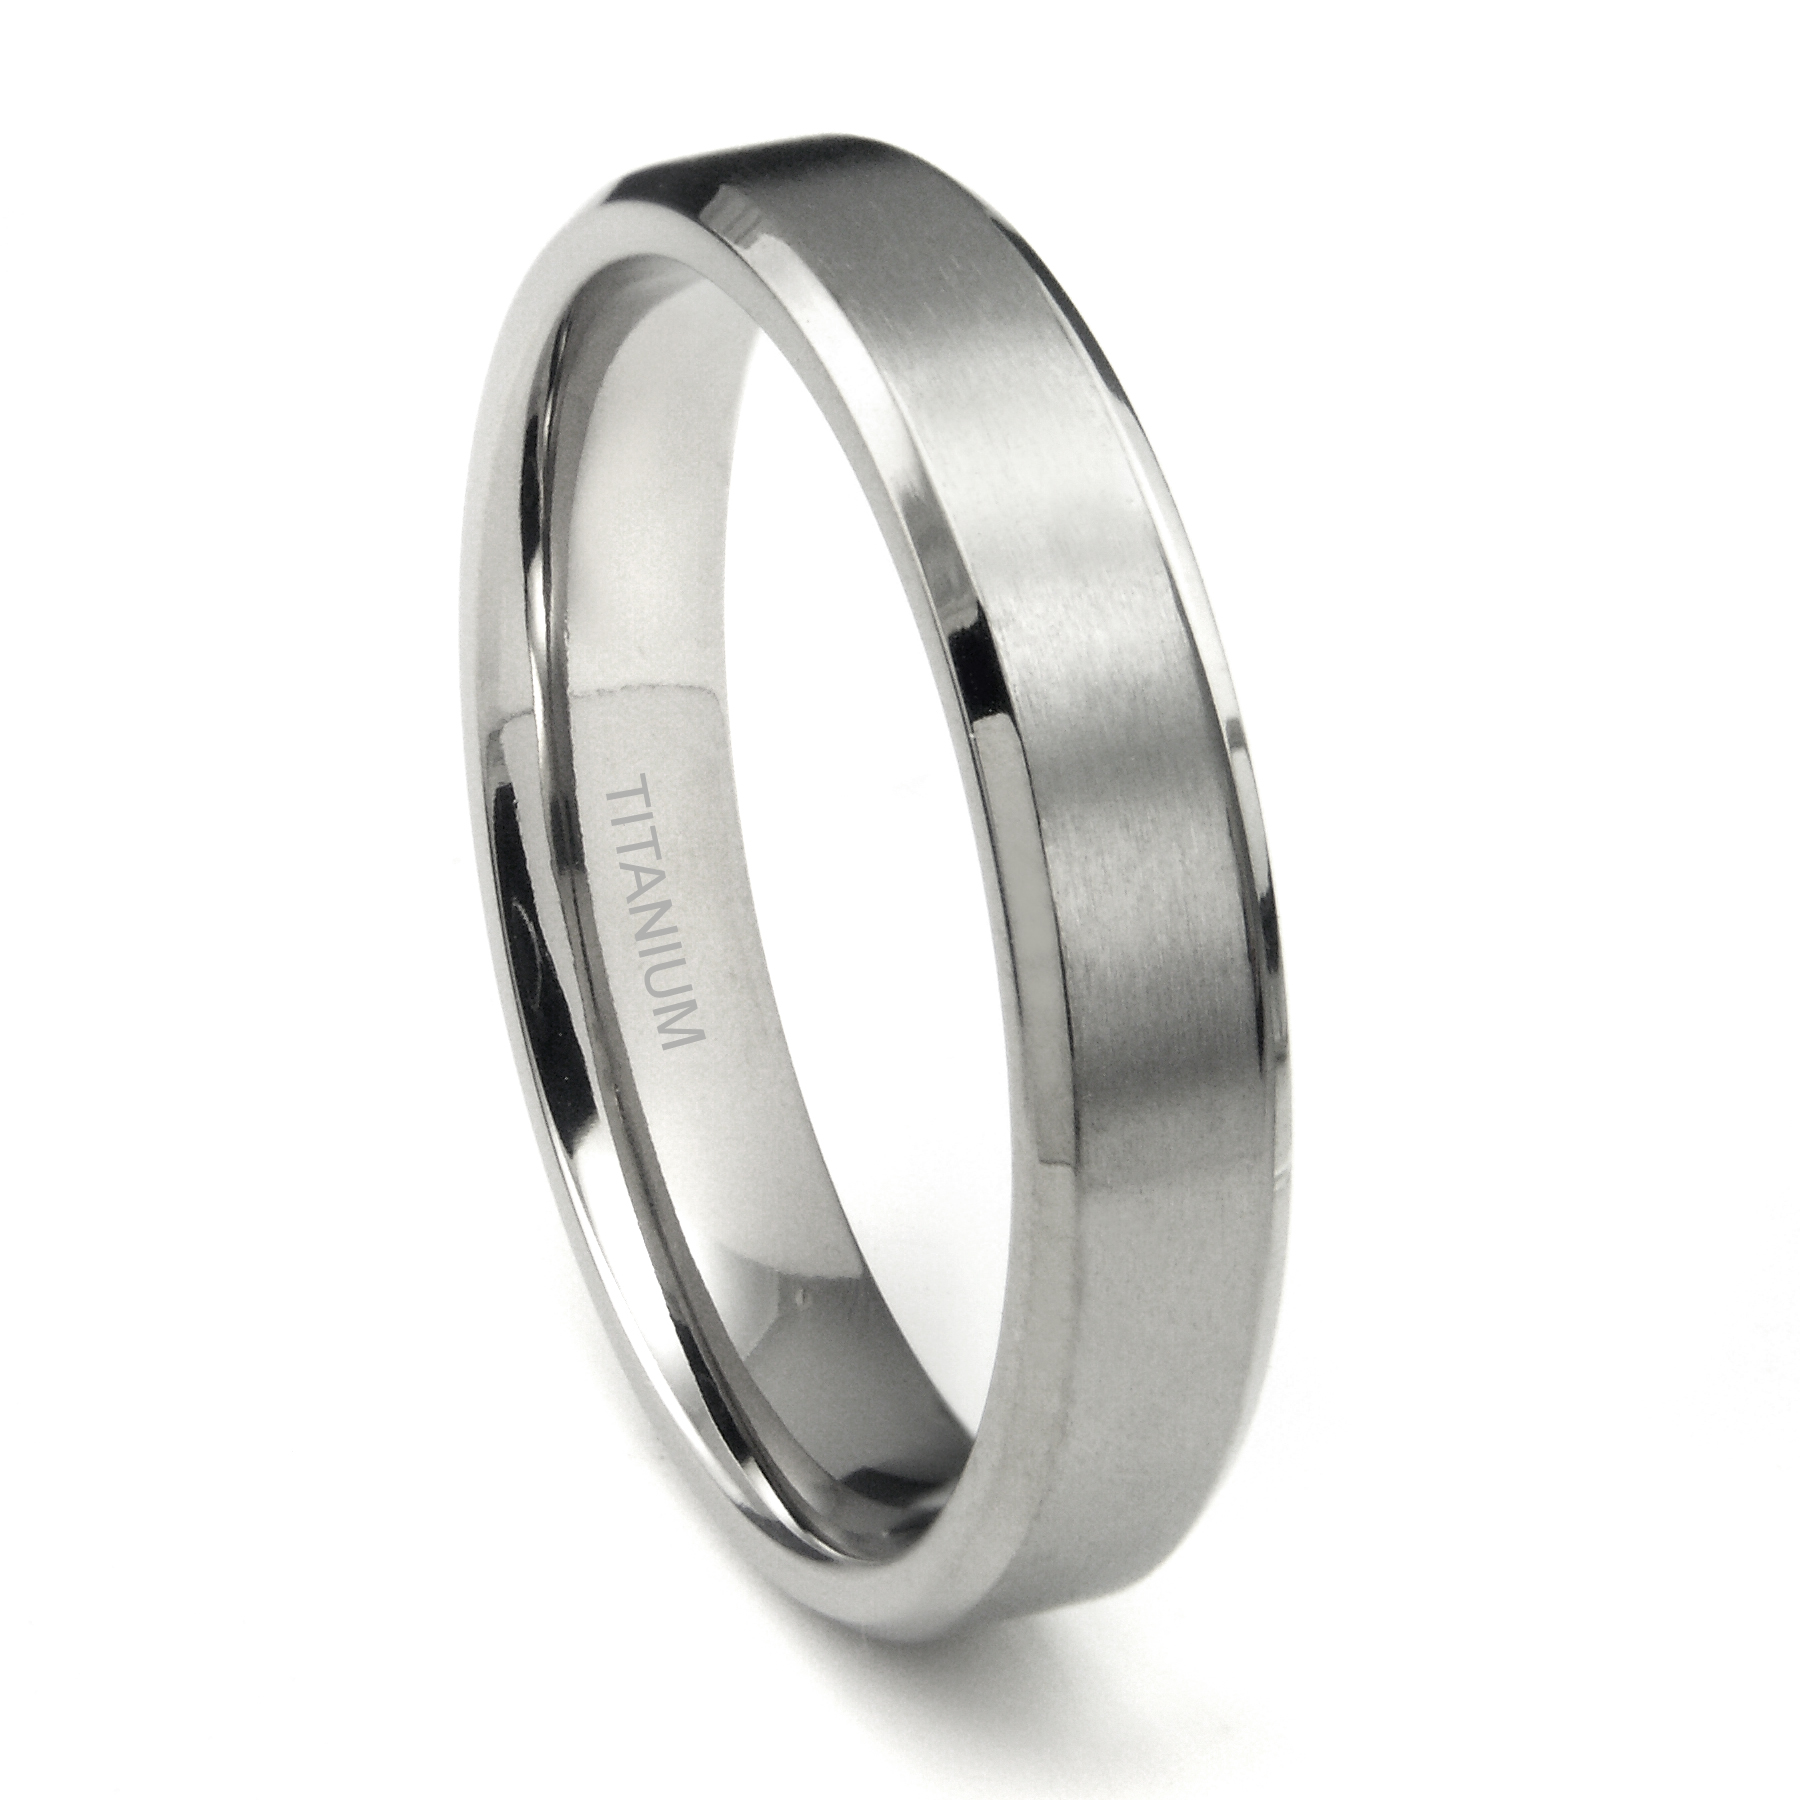 band rose of men bands s ring on titanium rings large eternity size gold mens wedding hand